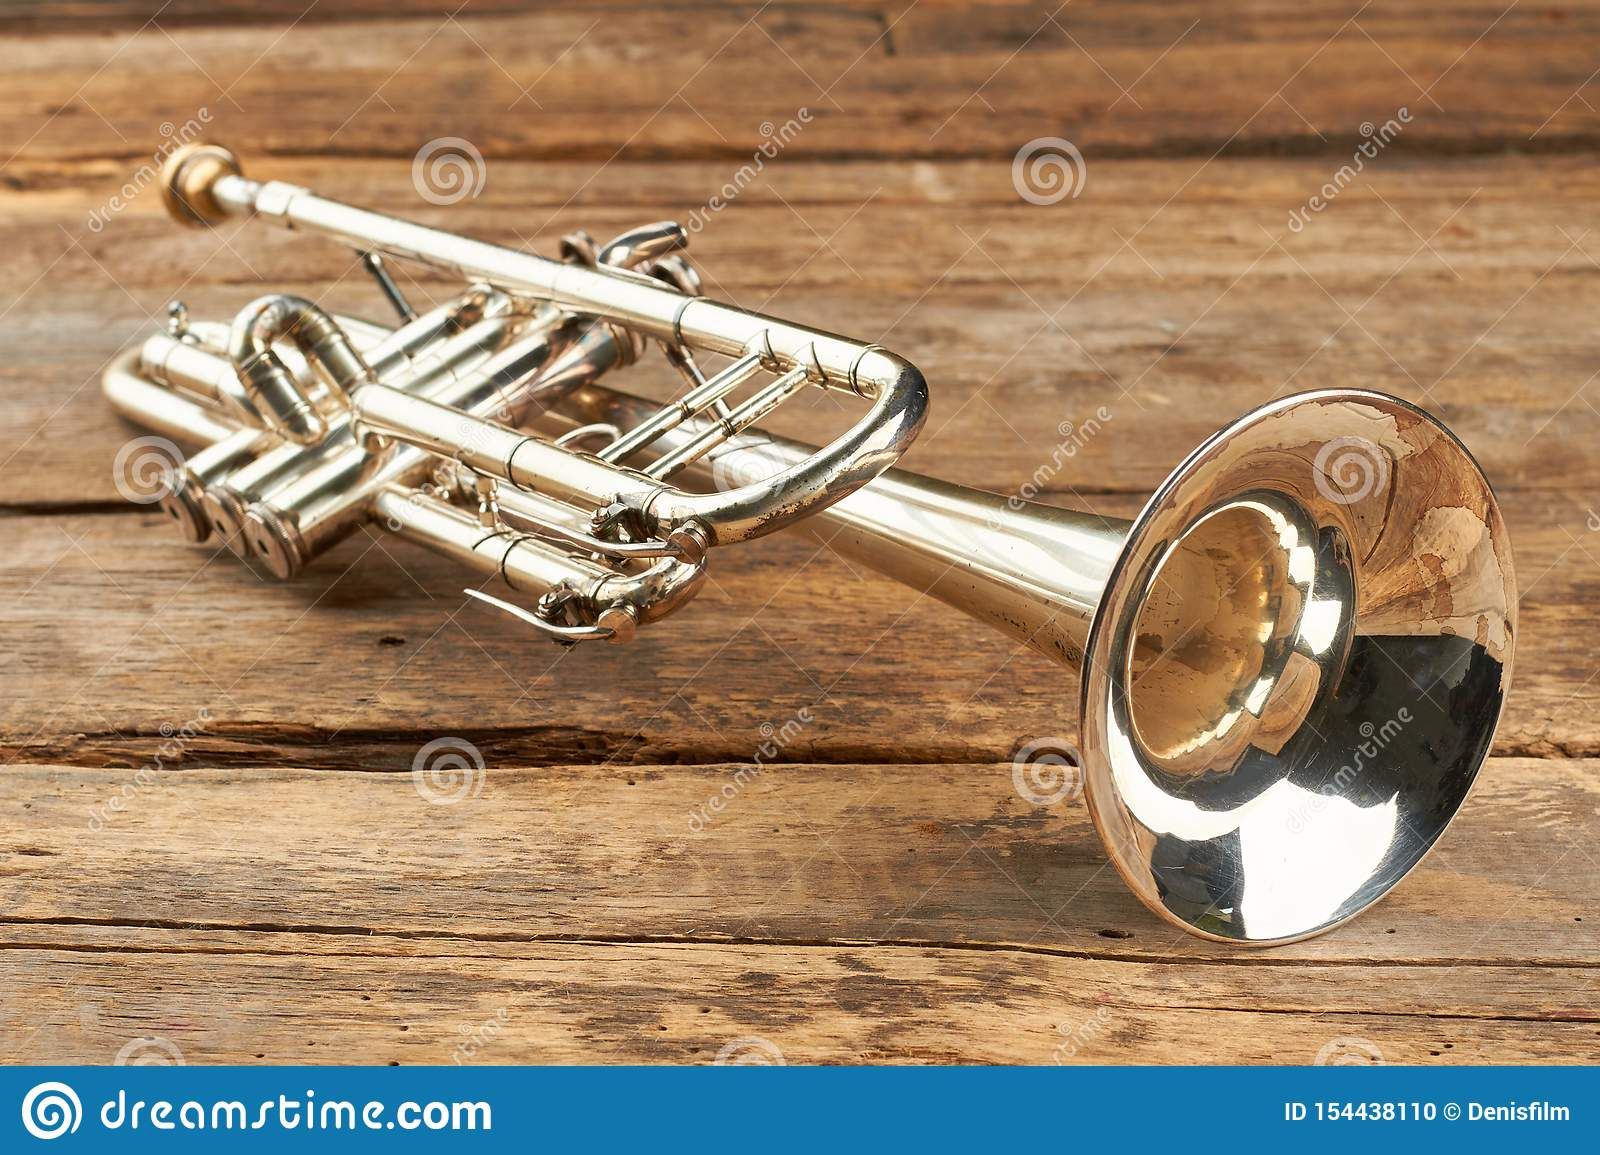 Rusty trumpet on old wooden surface.